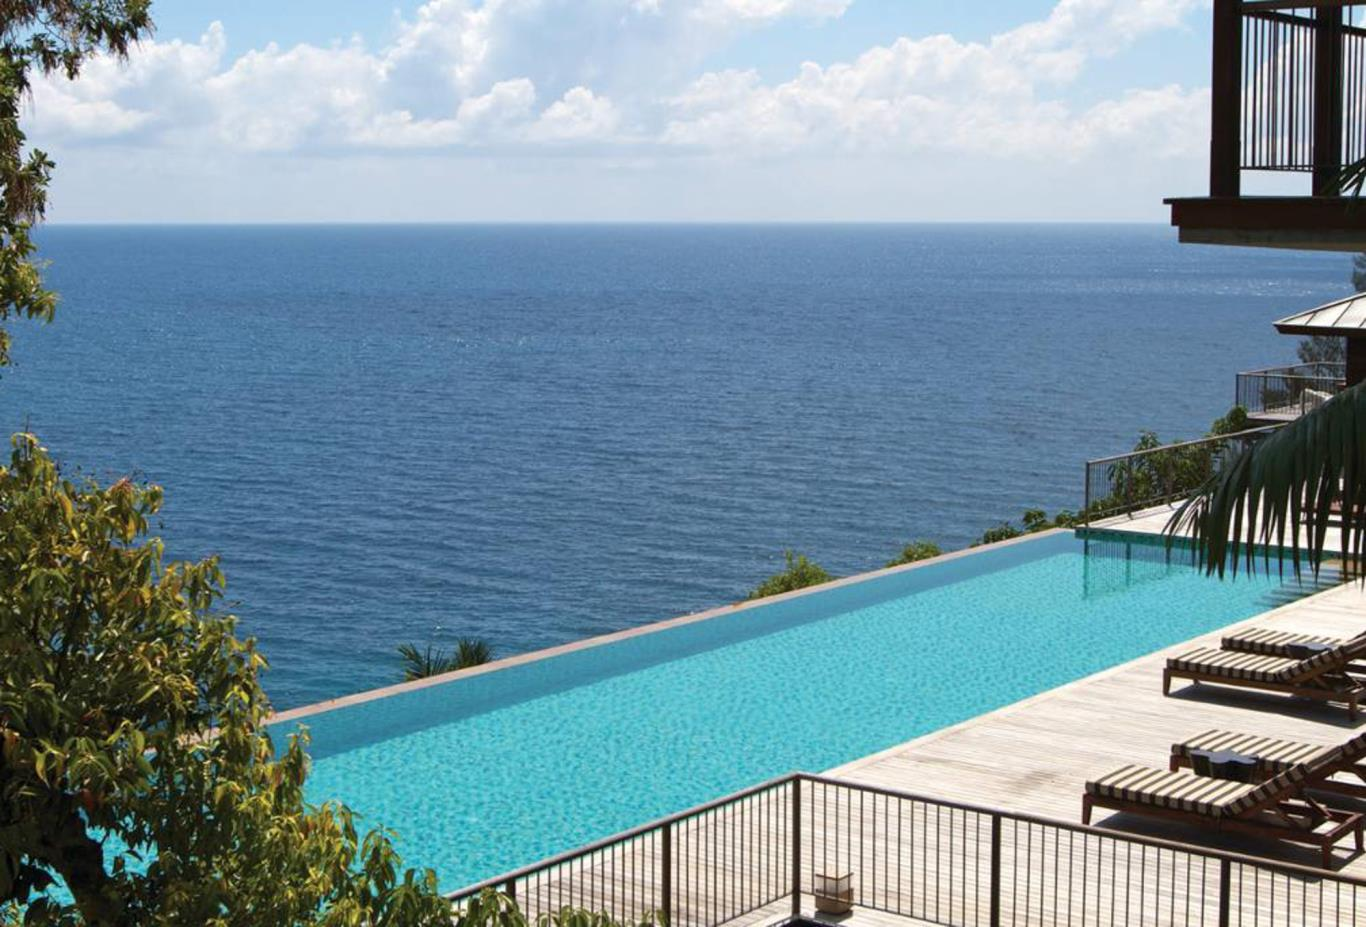 4 Bed Residence pool and view